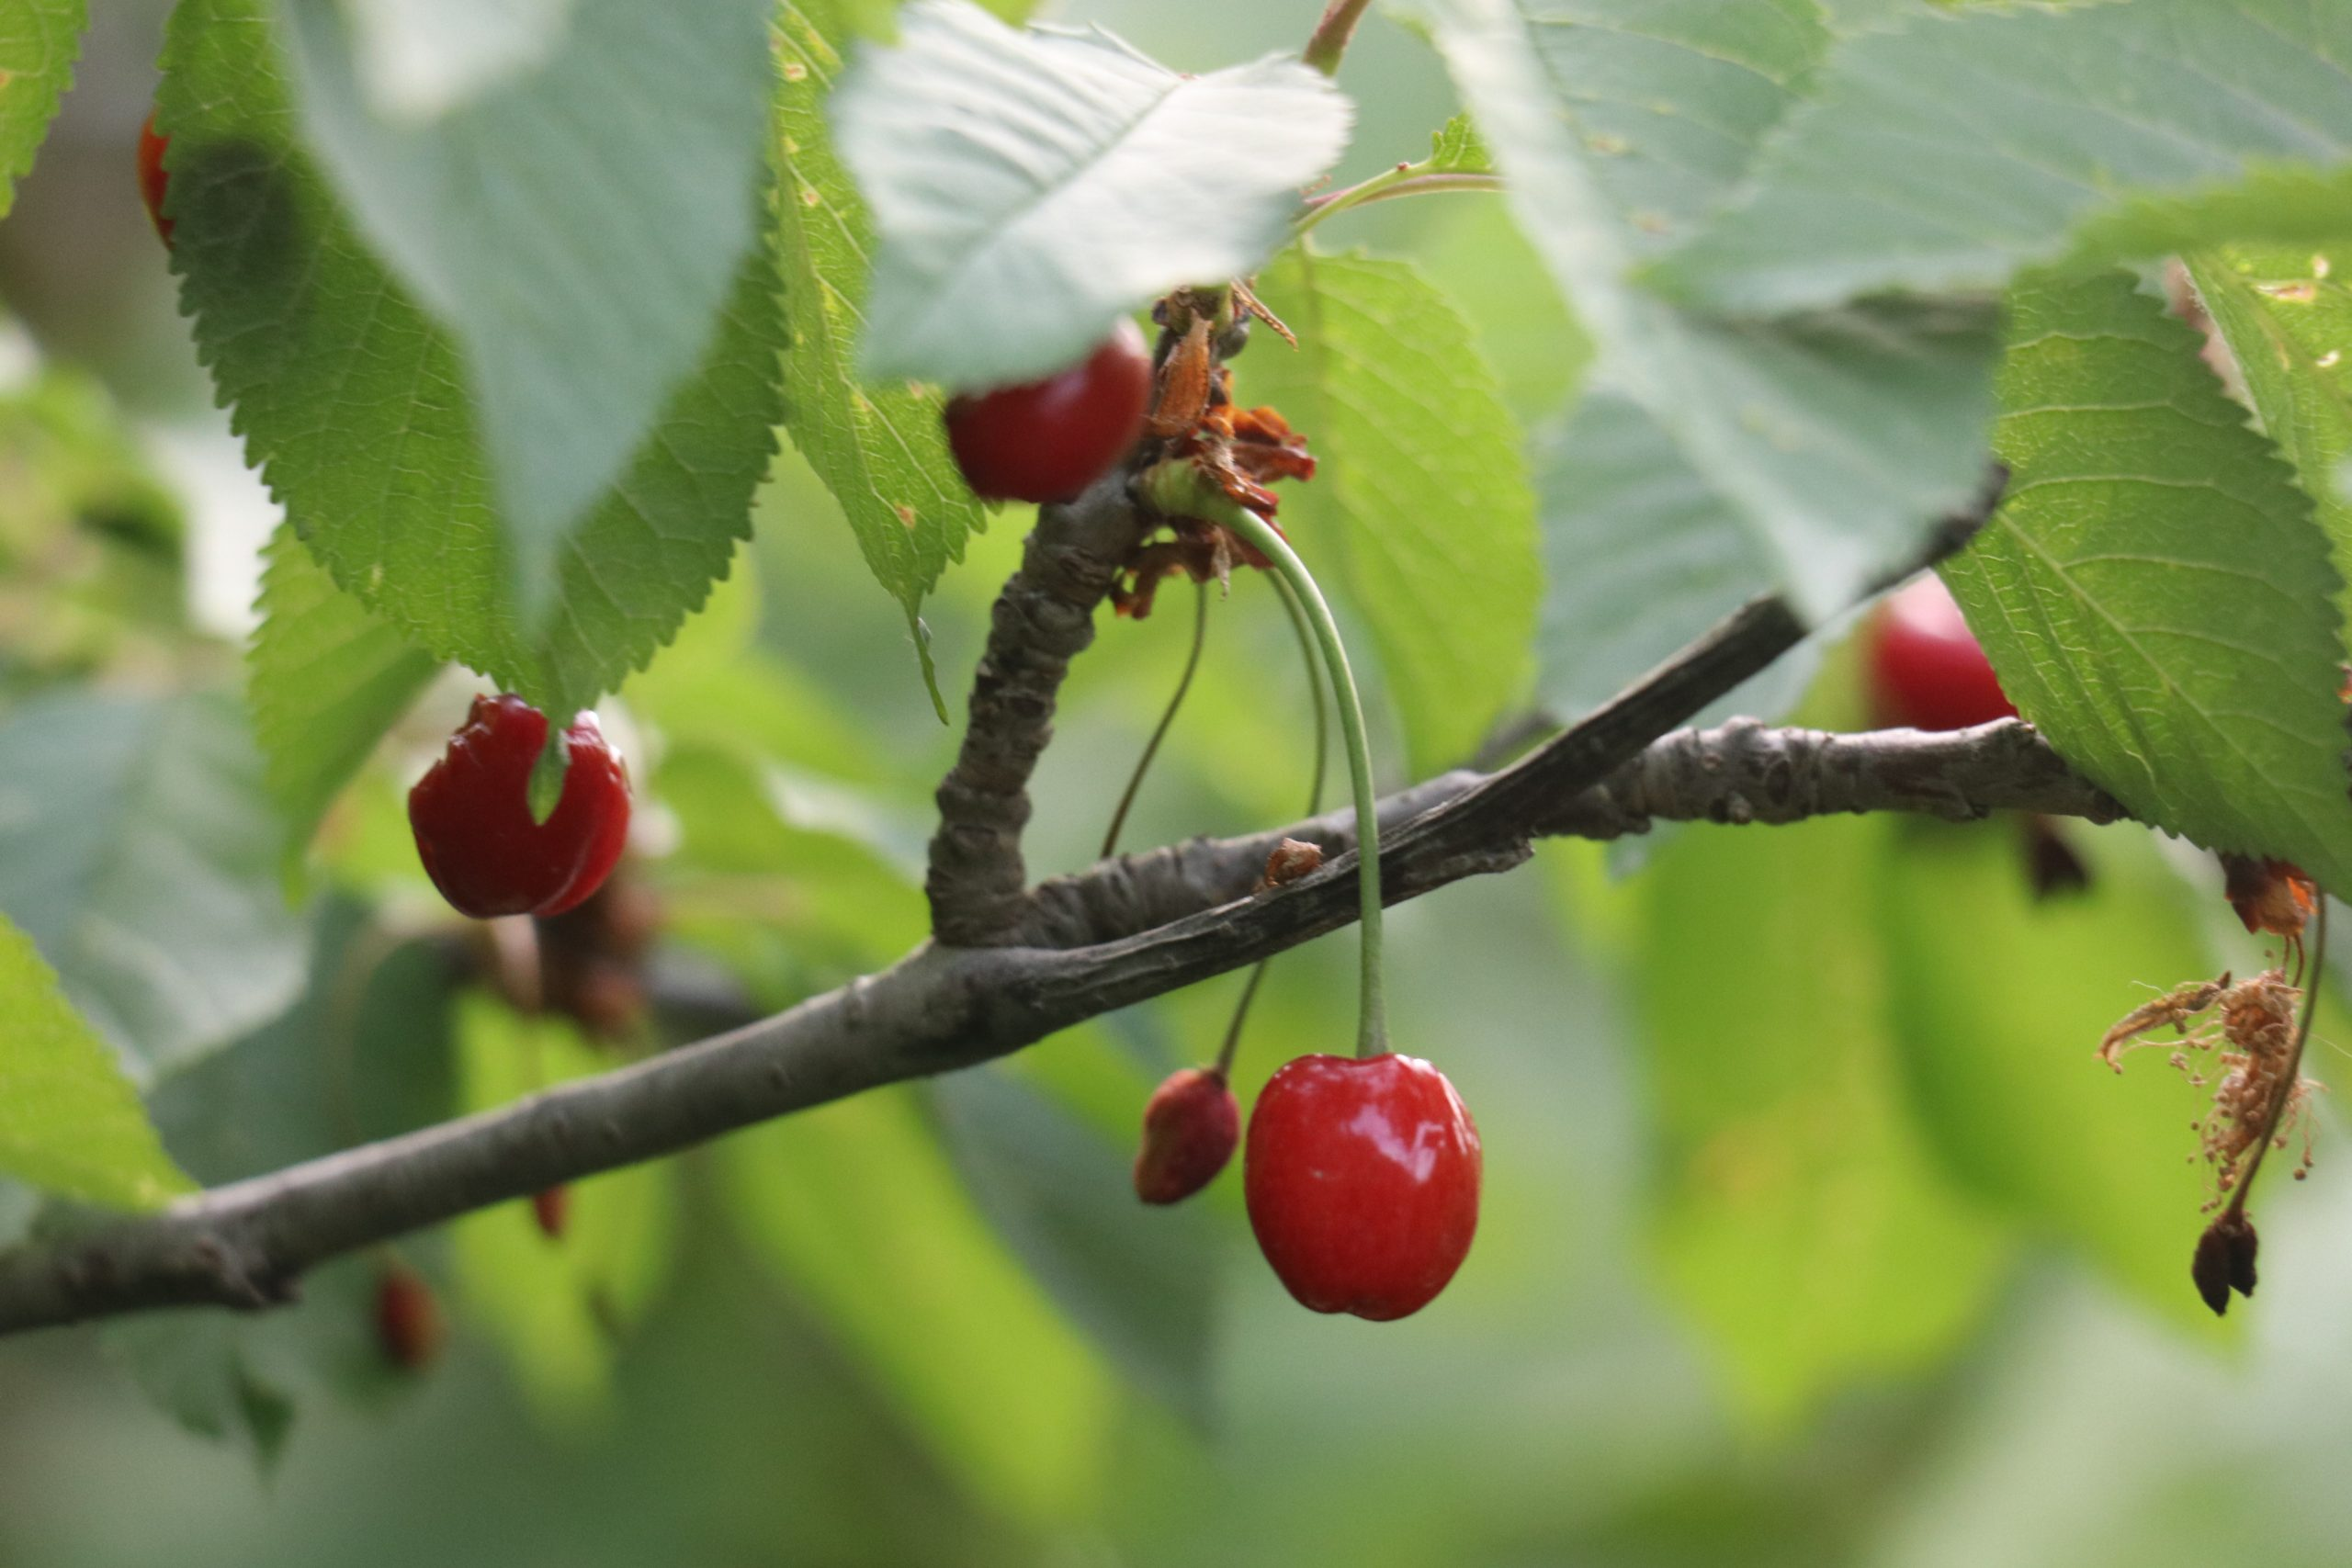 Red cherries growing on a plant